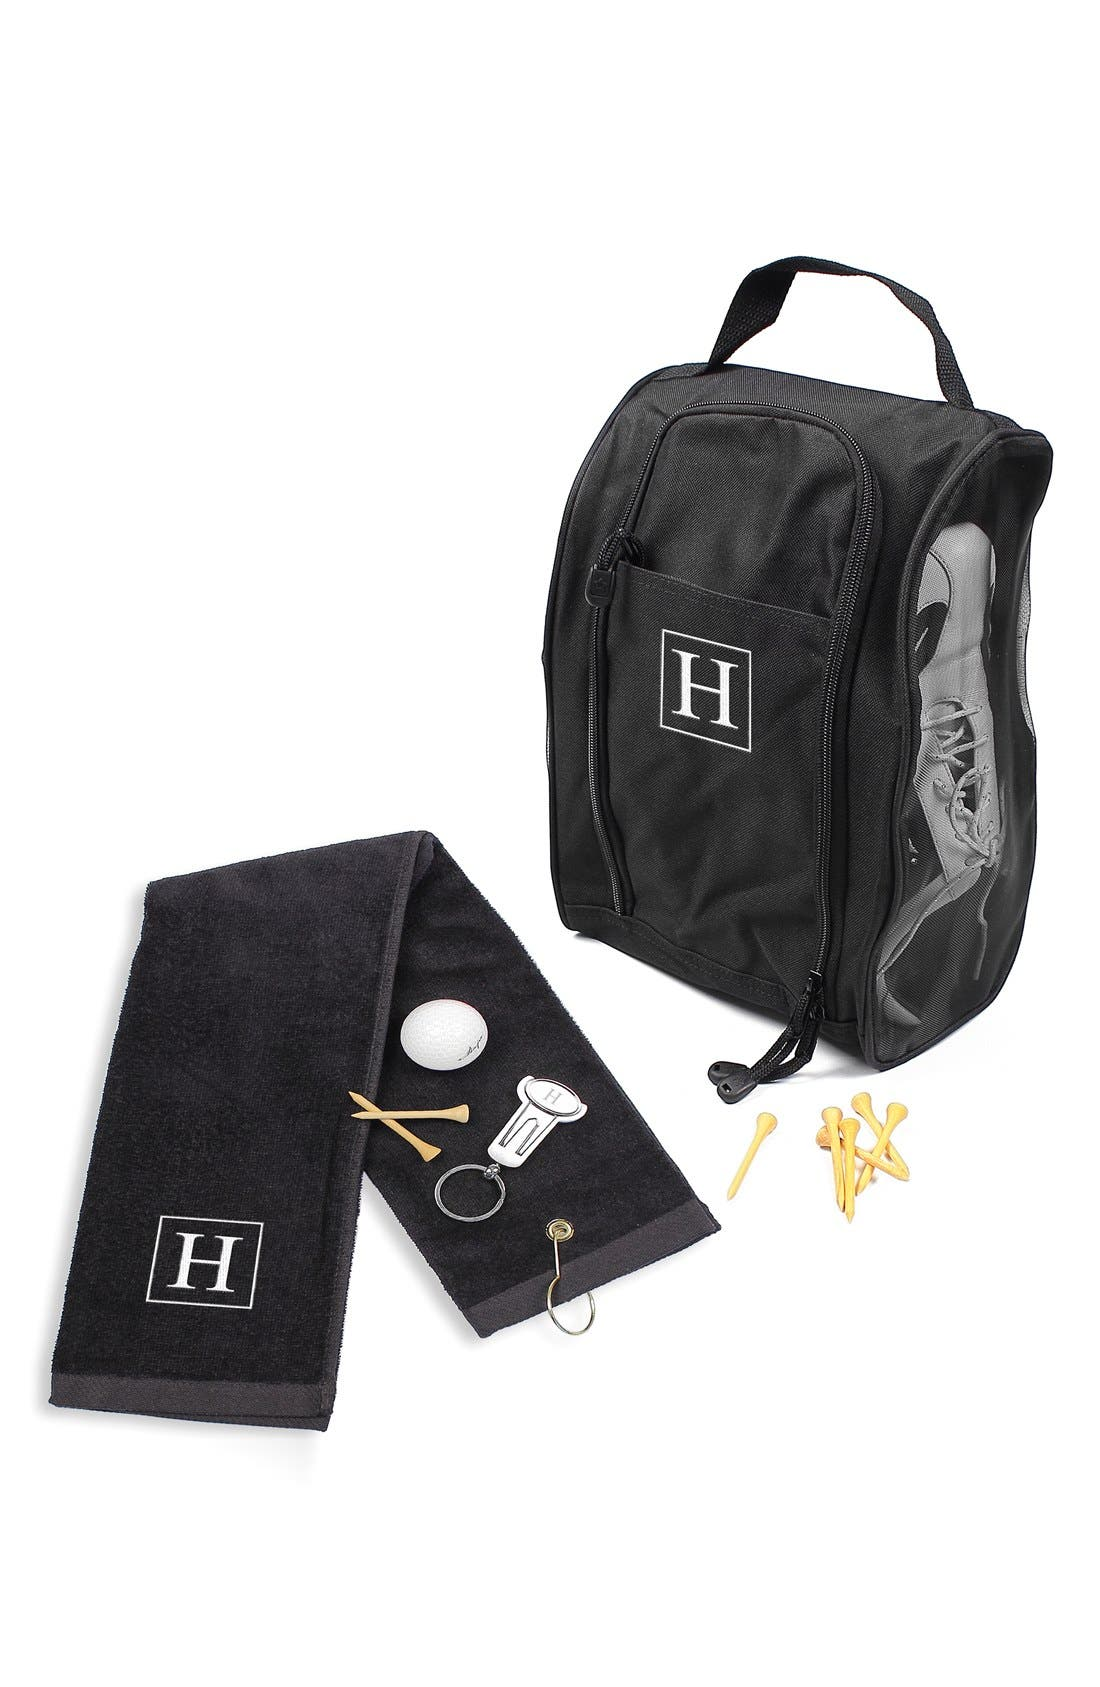 Monogram Golf Set,                         Main,                         color, 009